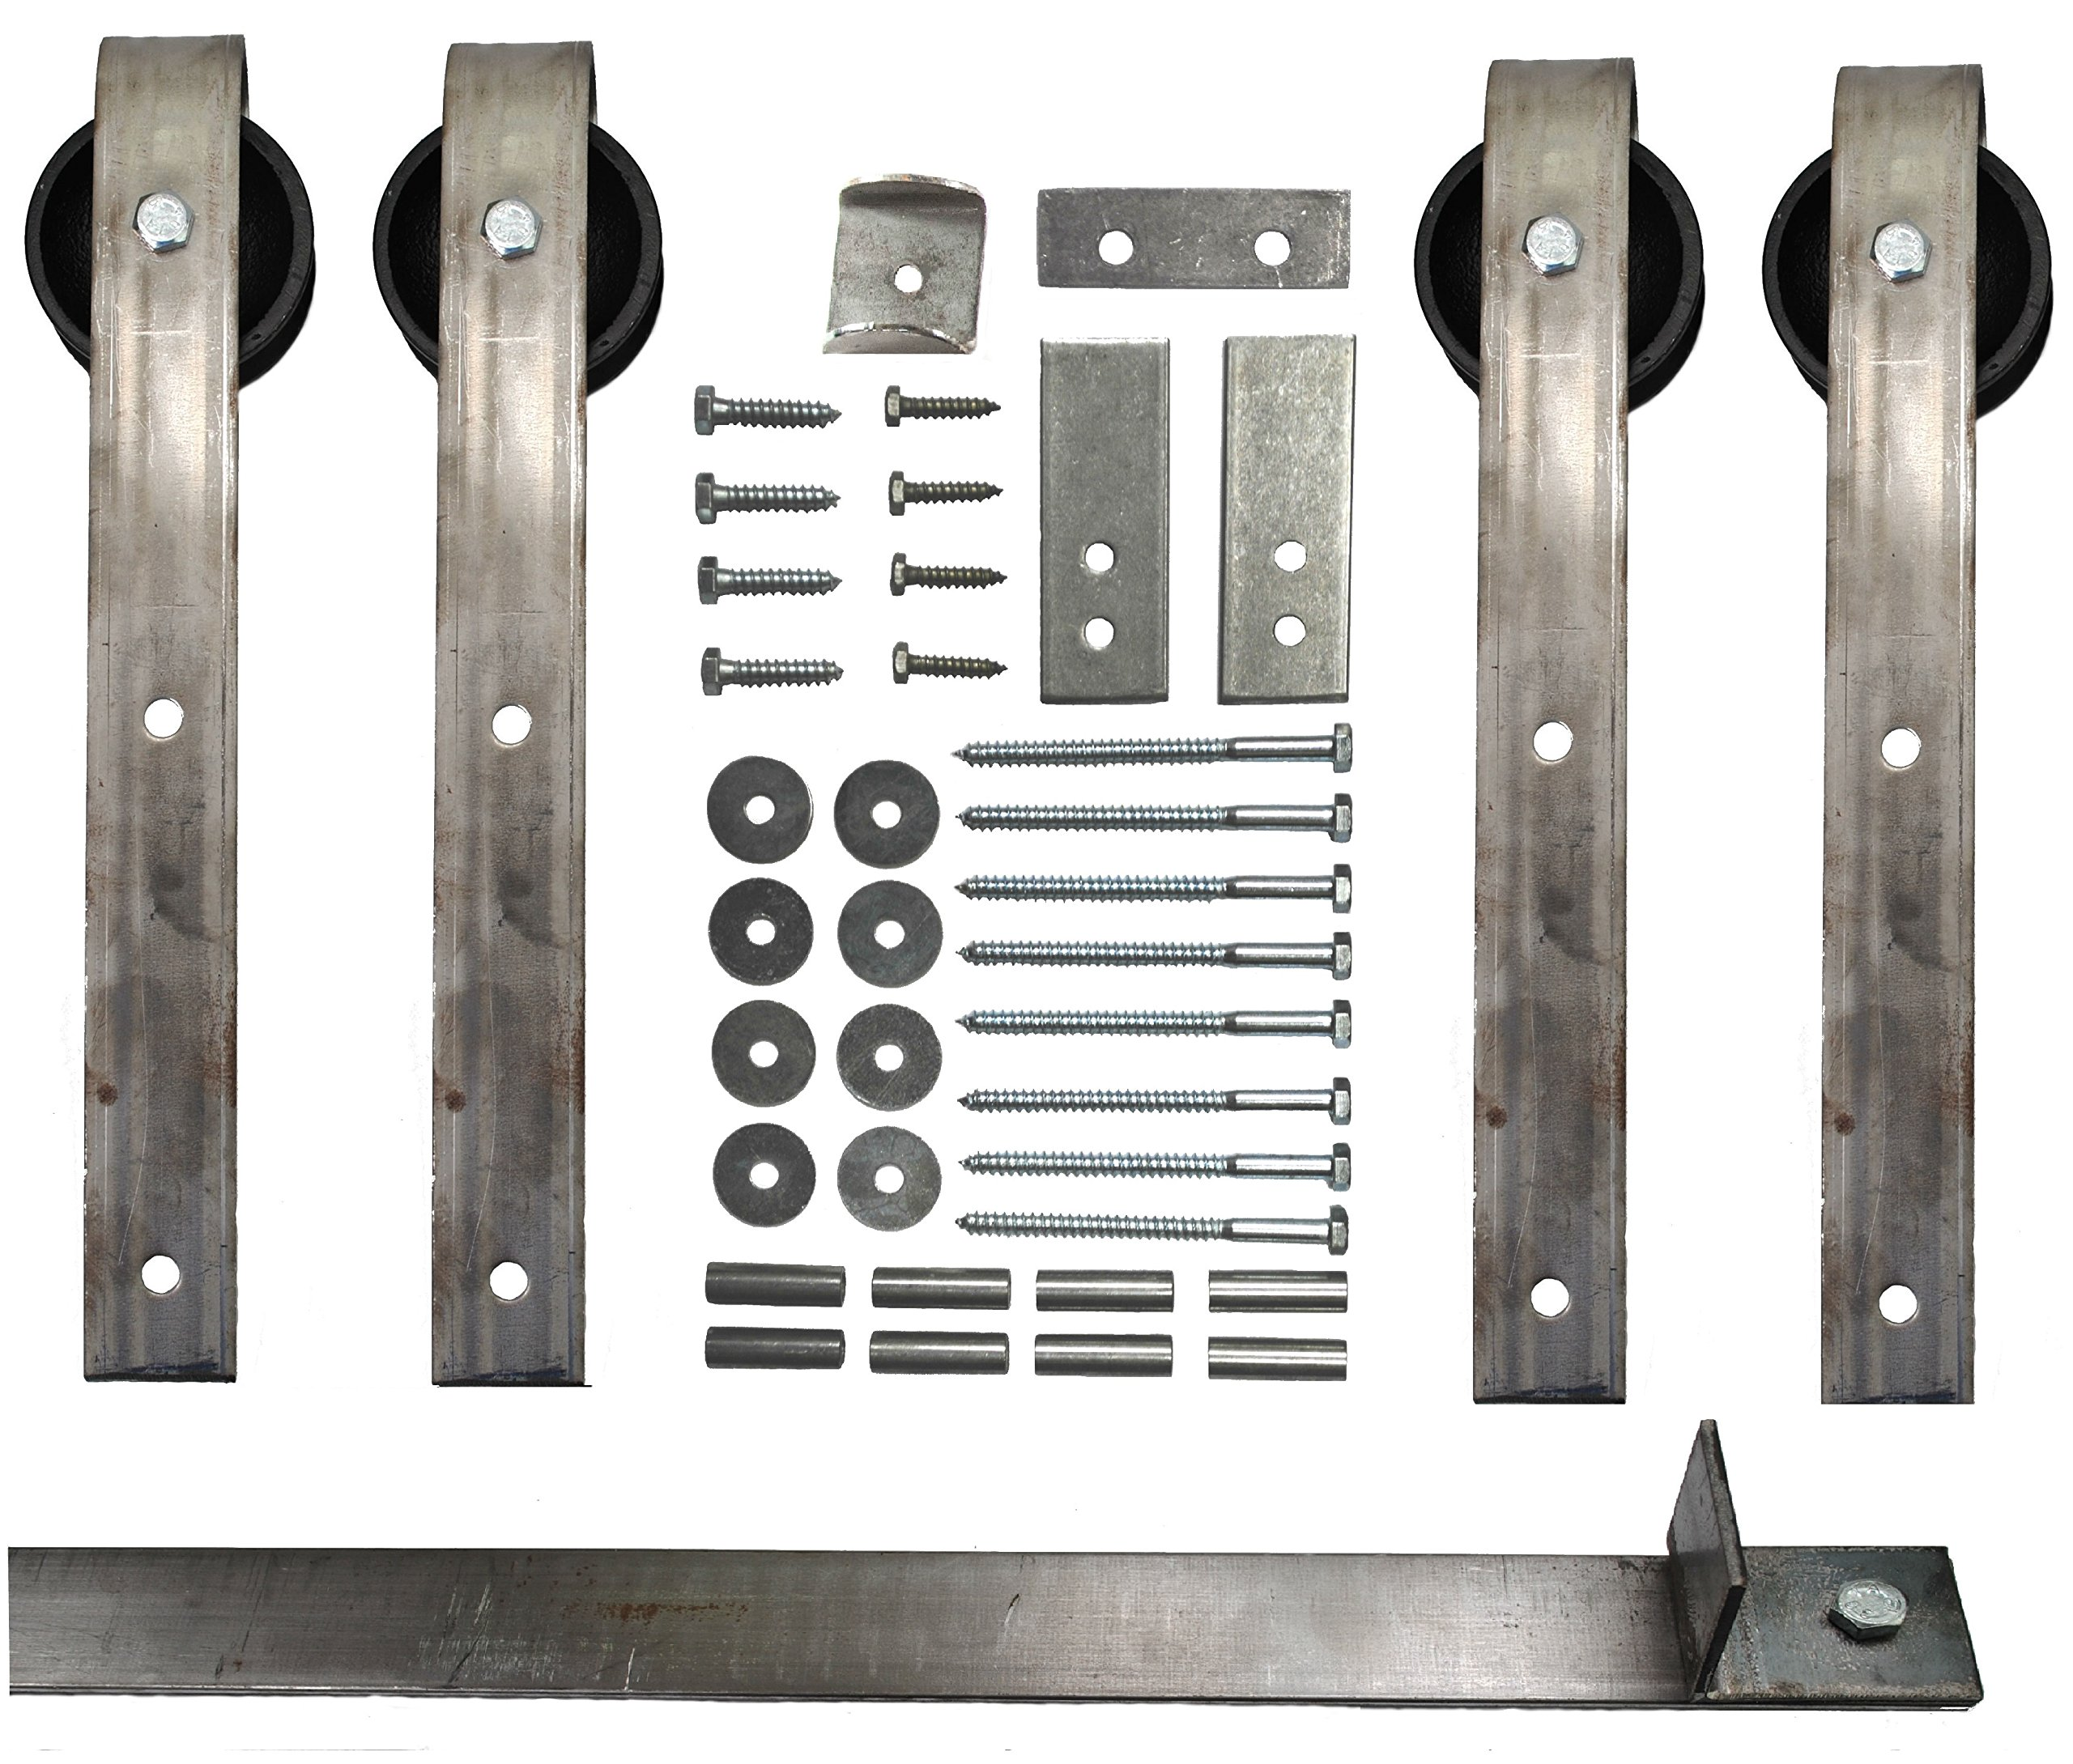 Double Sliding Barn Door Hardware Kit with 9 Ft. Track Included - Made in USA